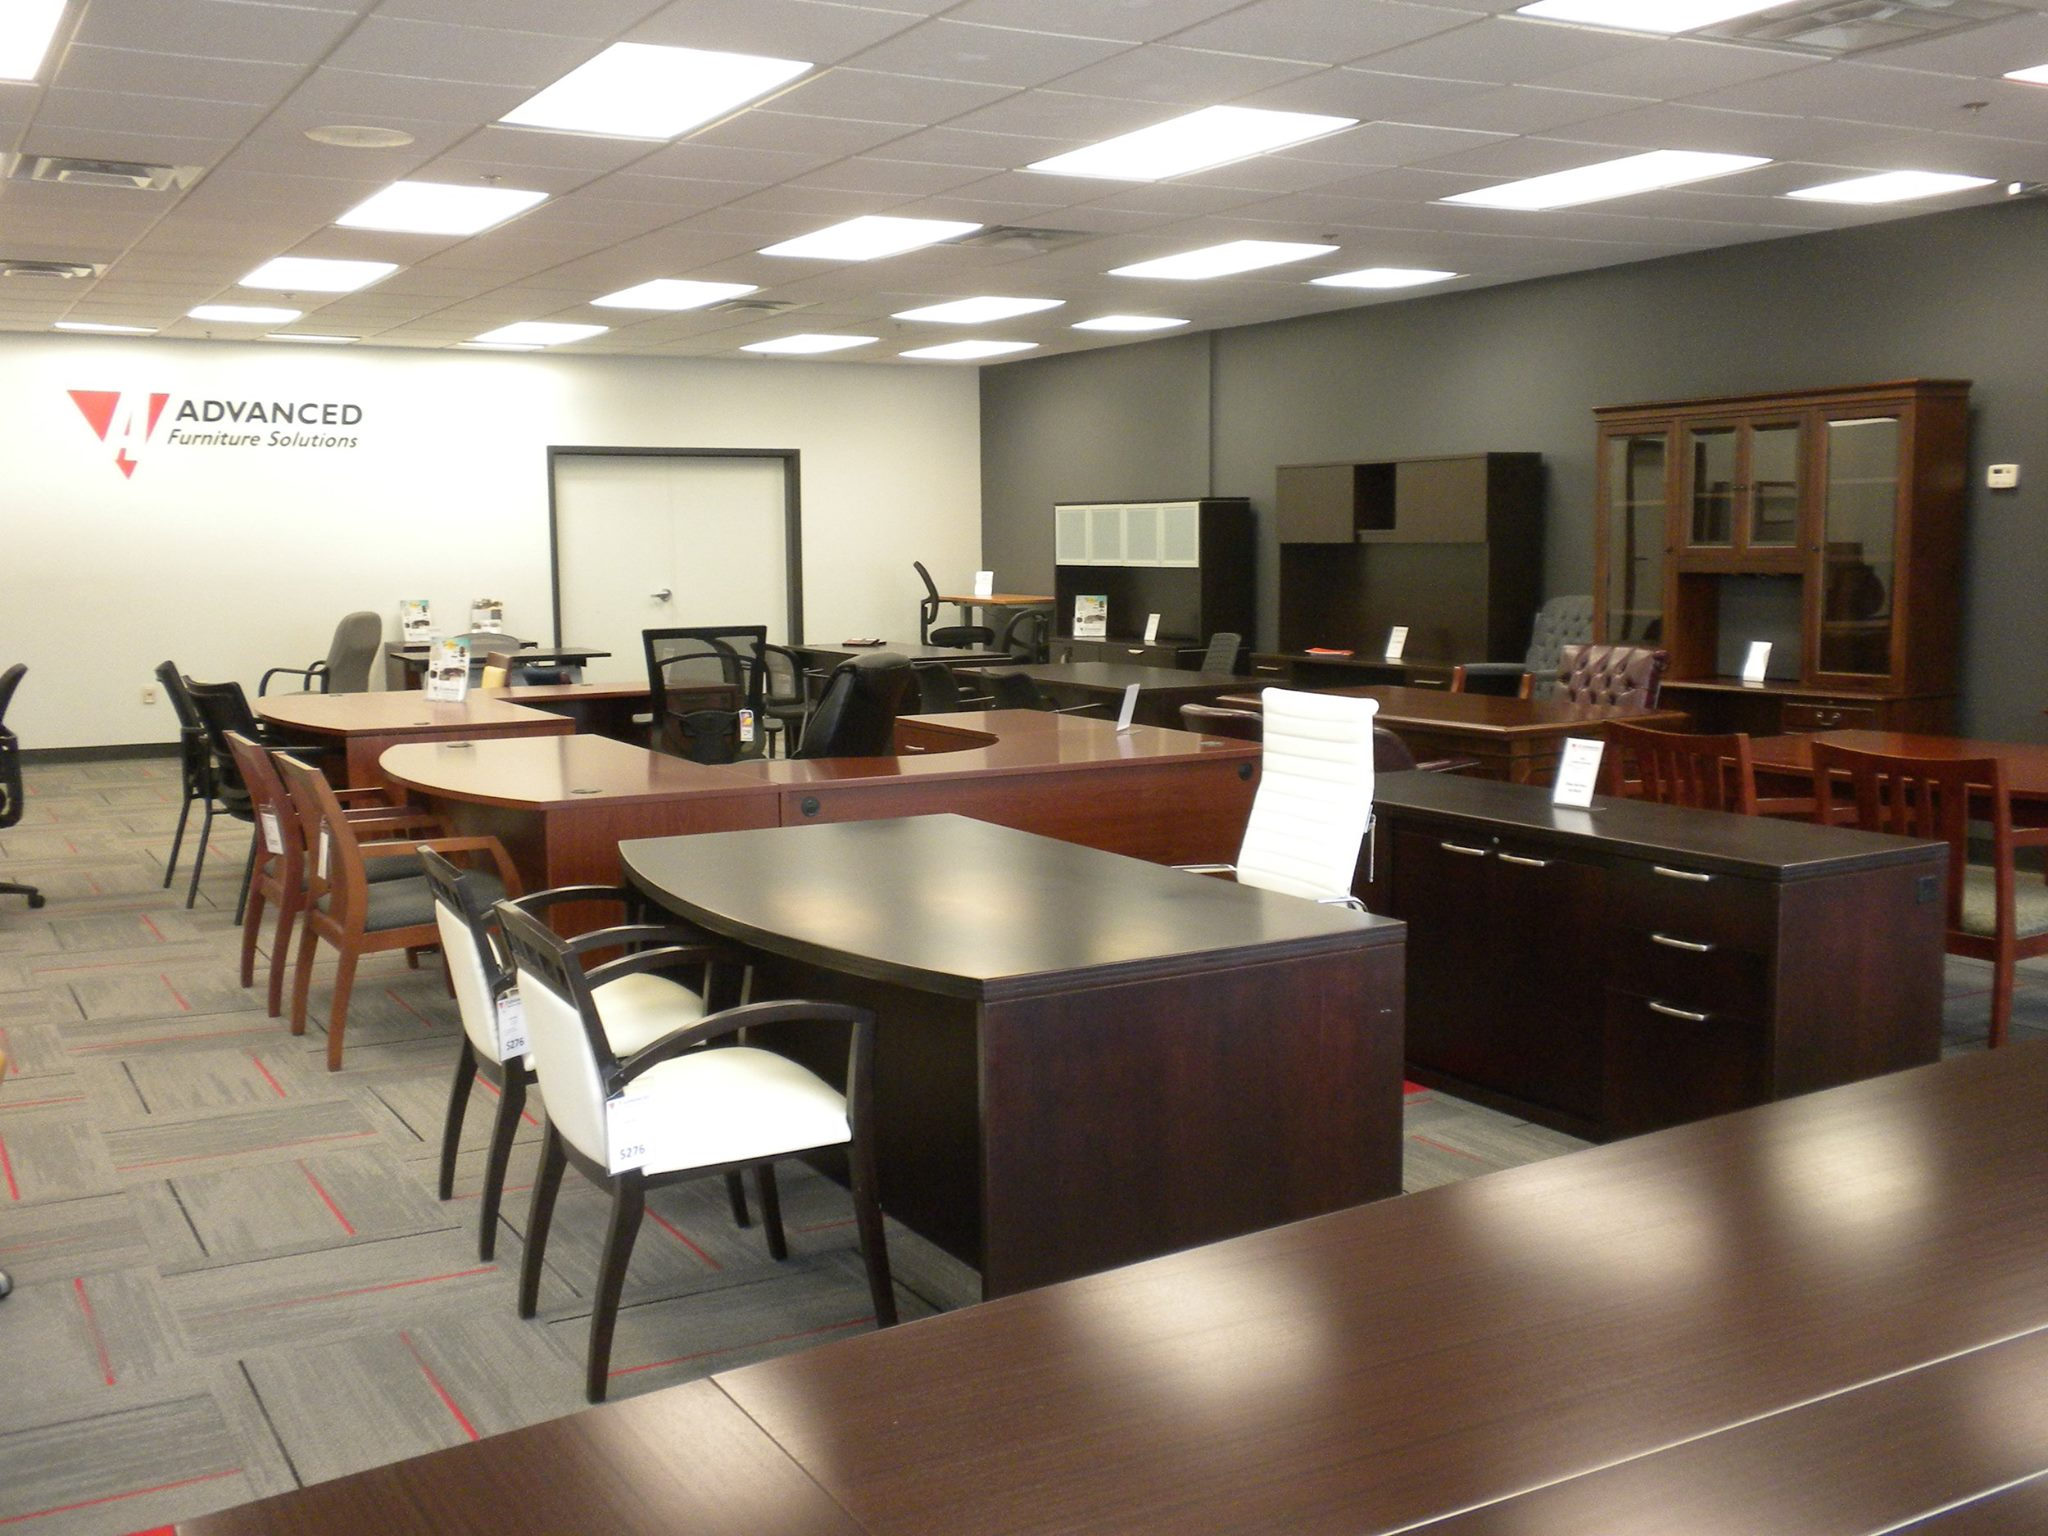 Advanced Furniture Solutions 9452 Philips Hwy Ste 7 Jacksonville